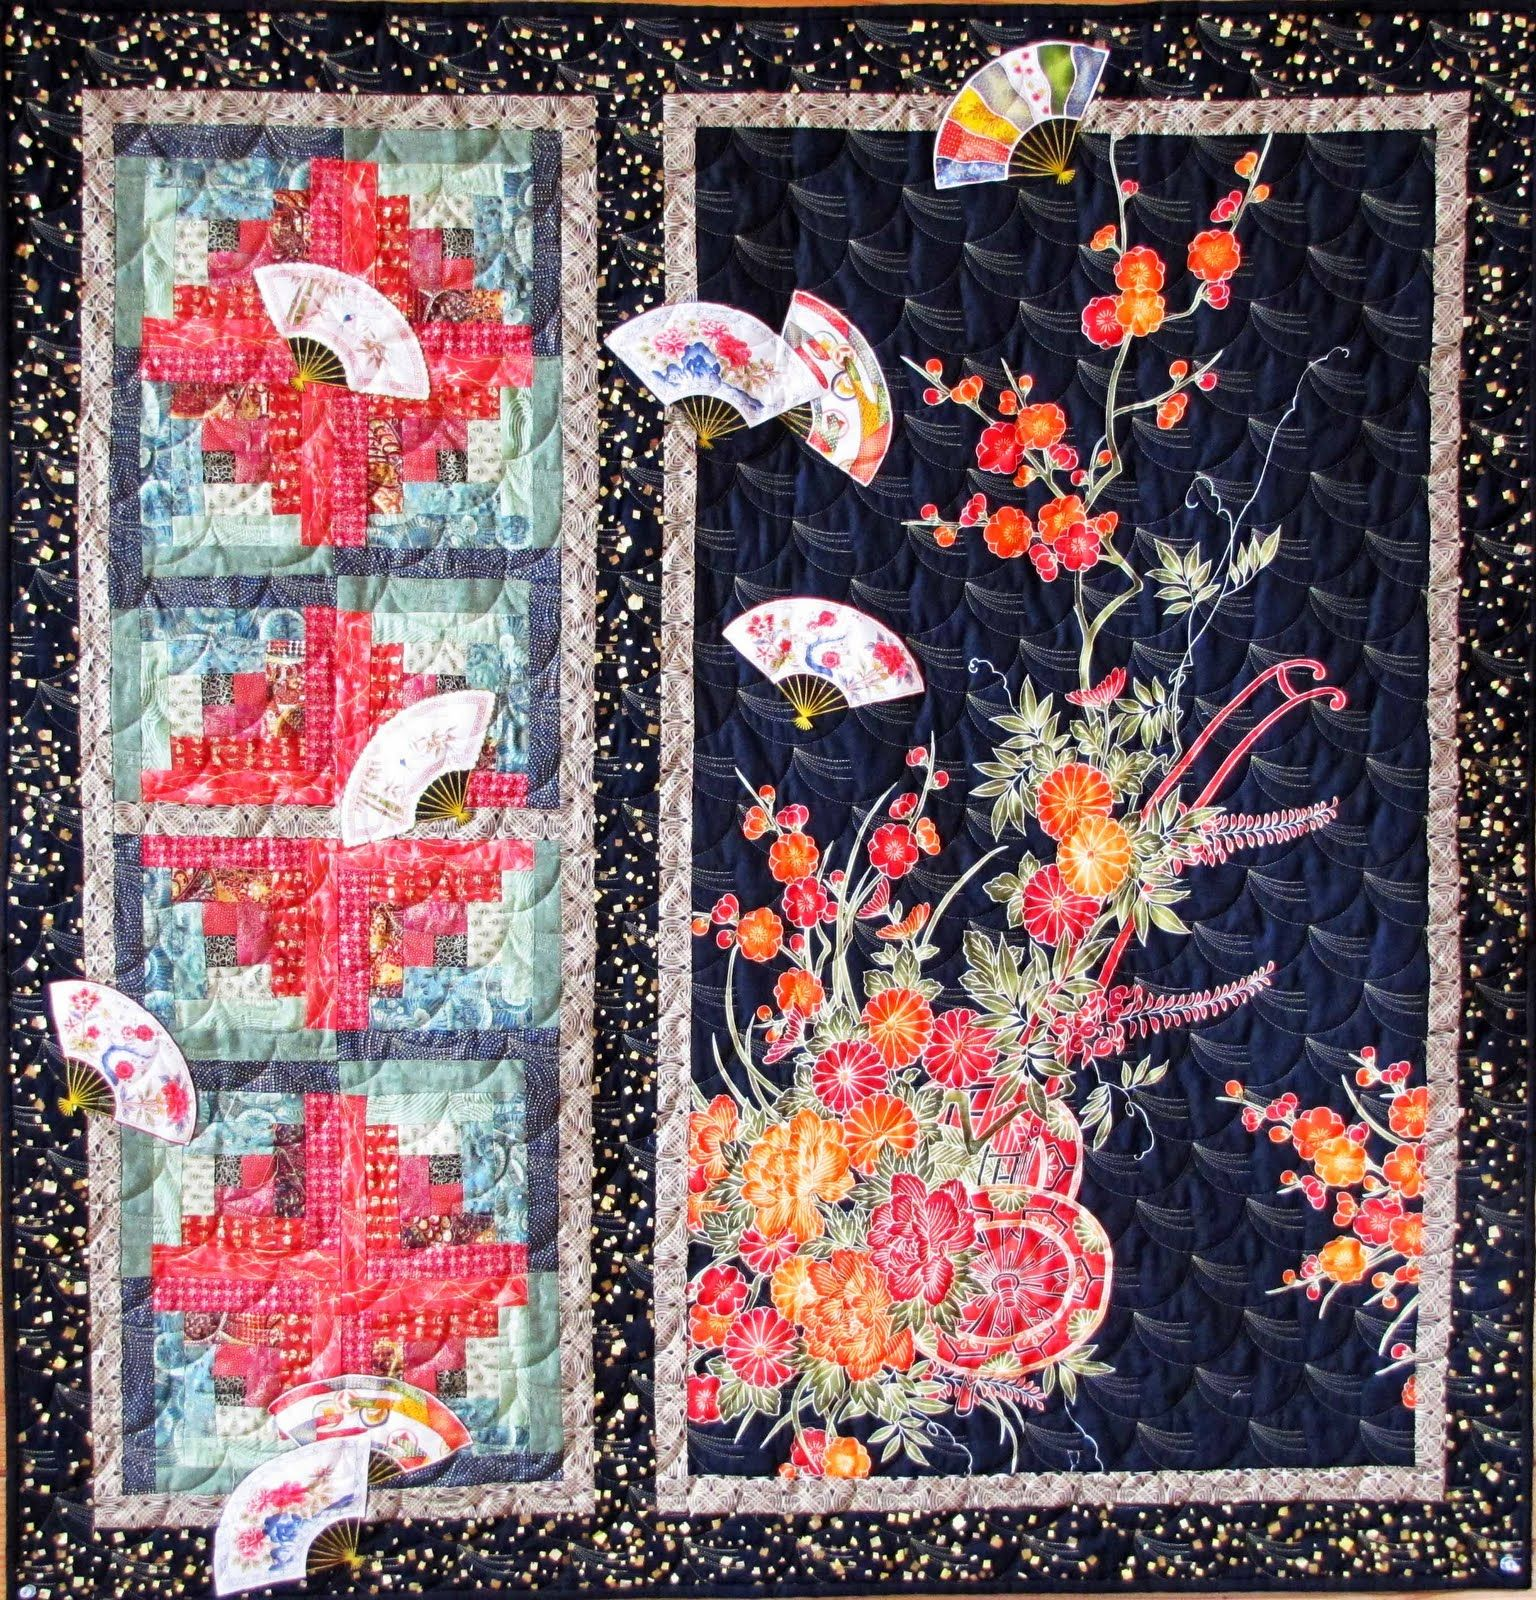 San Antonio Postcards The Asian Quilt Asian Quilts Japanese Quilts Panel Quilts